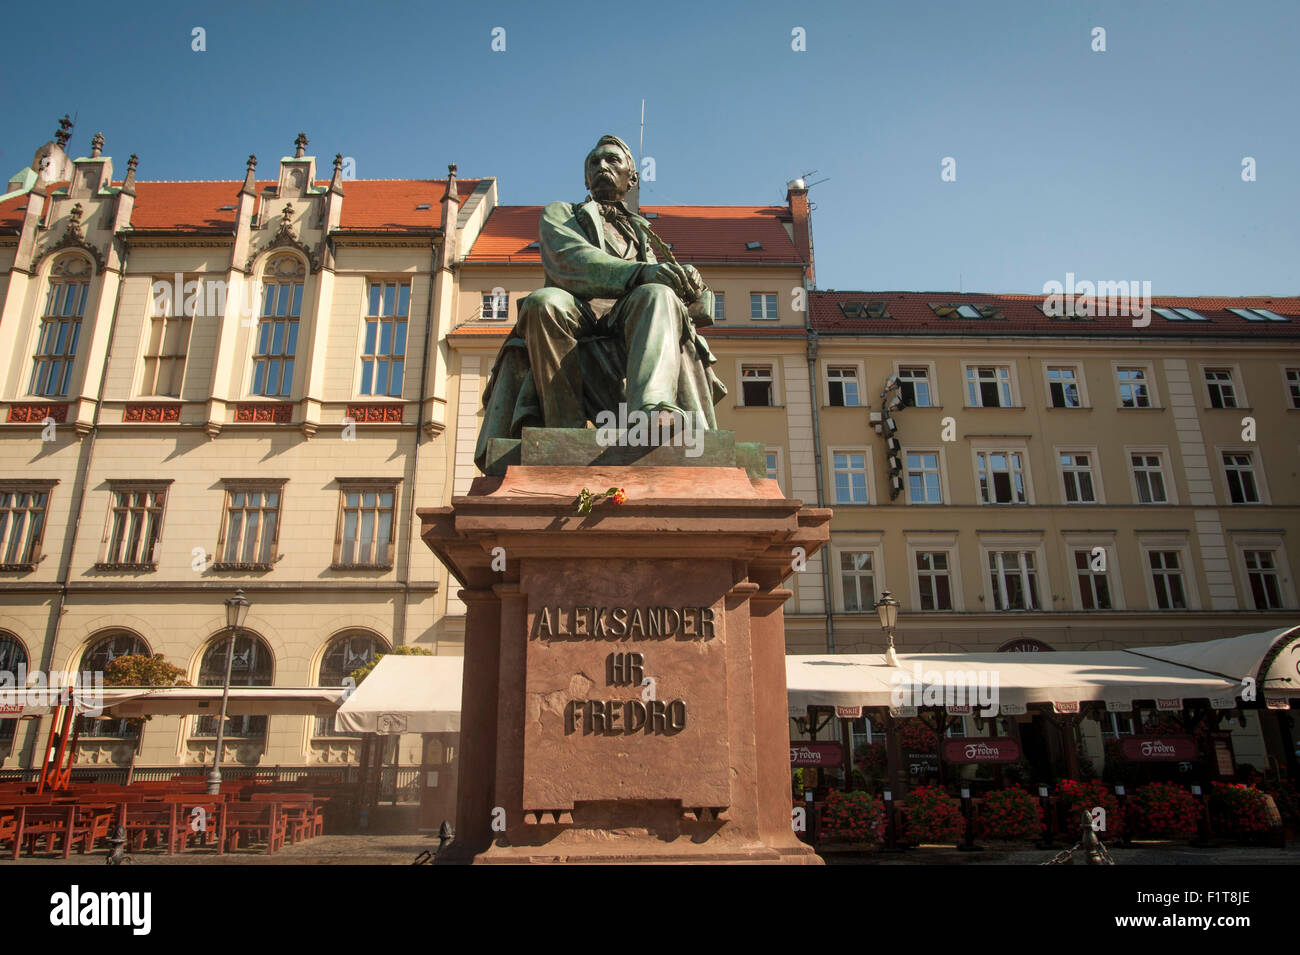 The statue of Alexander Fredro in the medieval market square of the Rynek in Wroclaw, Poland. - Stock Image